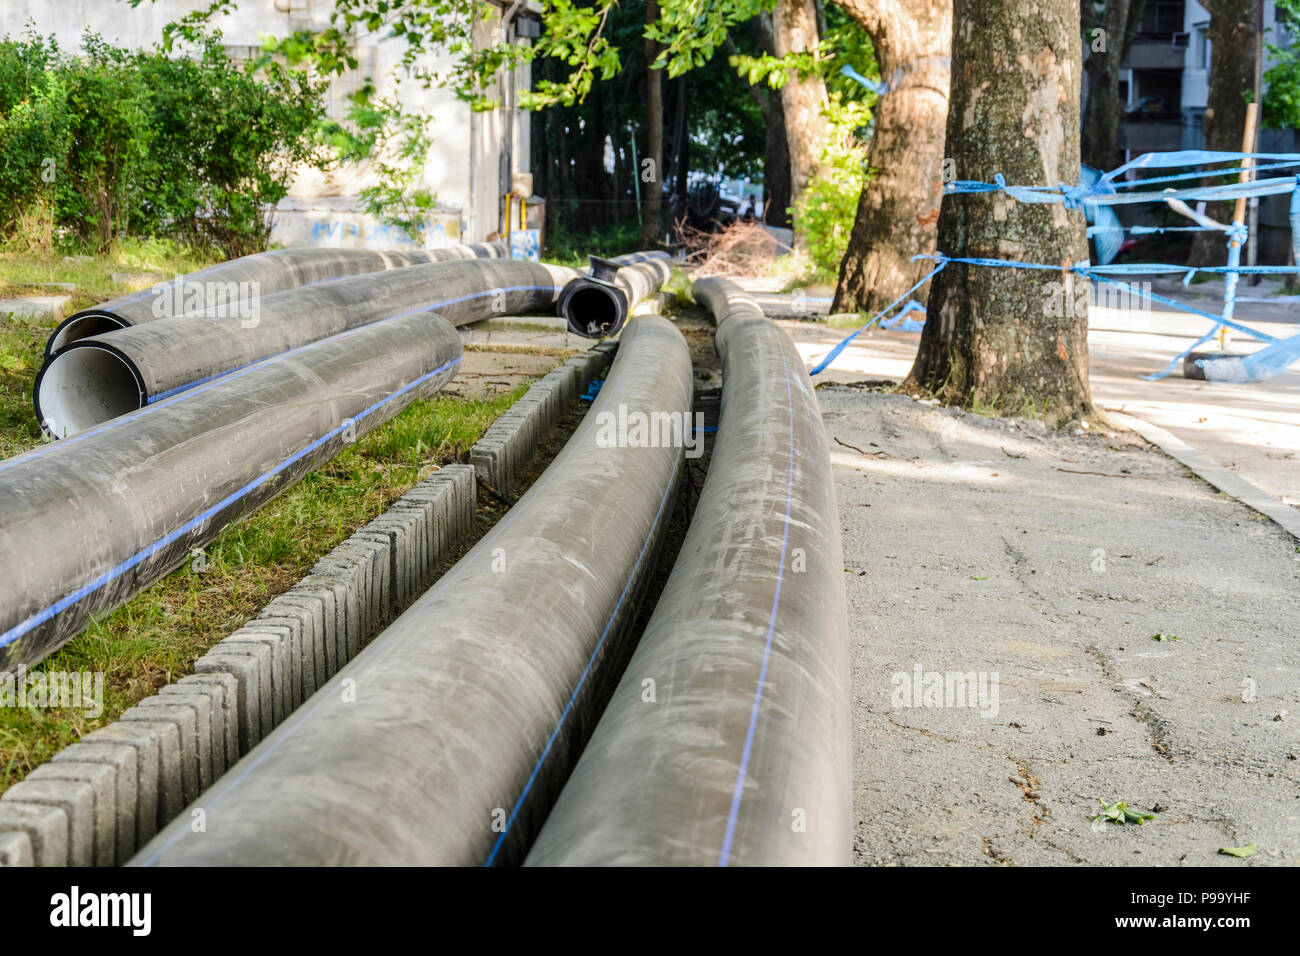 water pipe in a construction site in the middle of the street - Stock Image